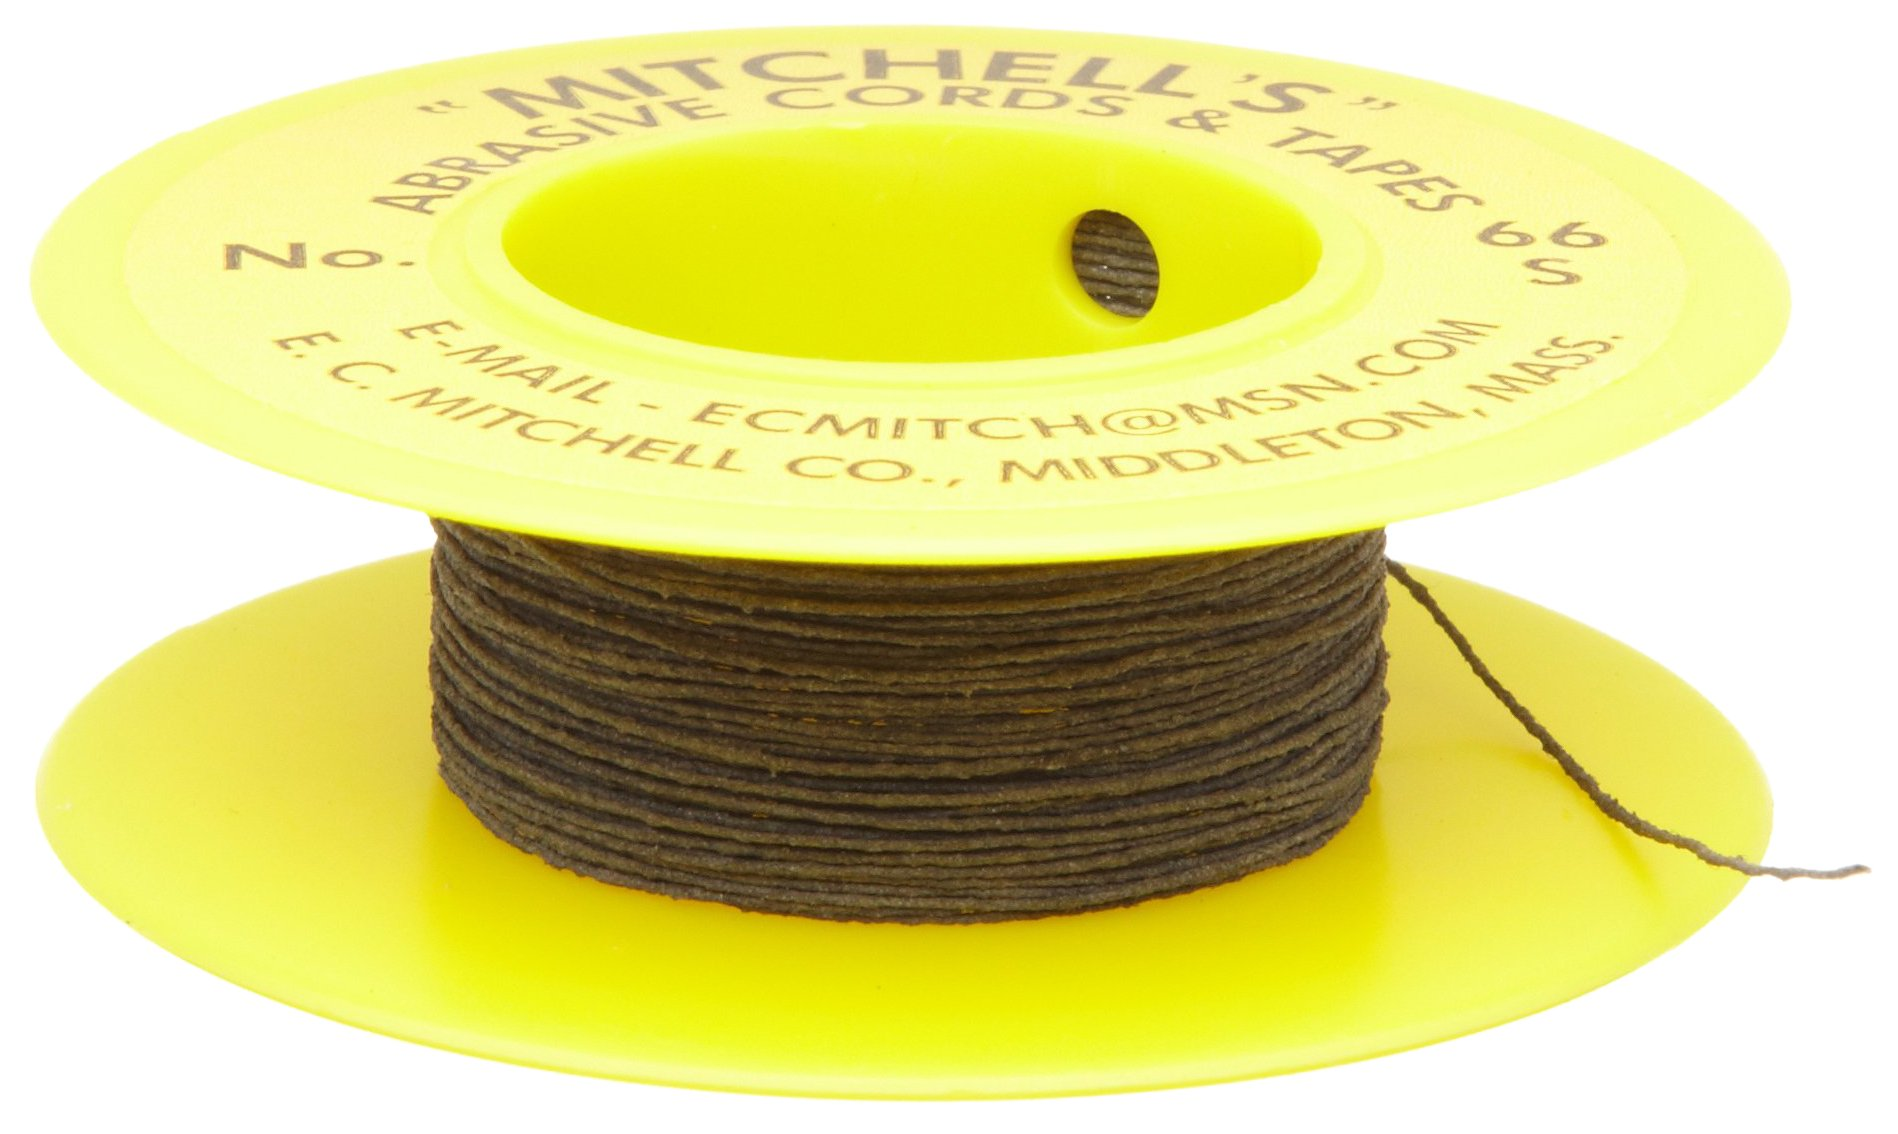 Mitchell Abrasives 66-S Round Abrasive Cord, Silicon Carbide 280 Grit .012'' Diameter x 25 Feet by Mitchell Abrasives